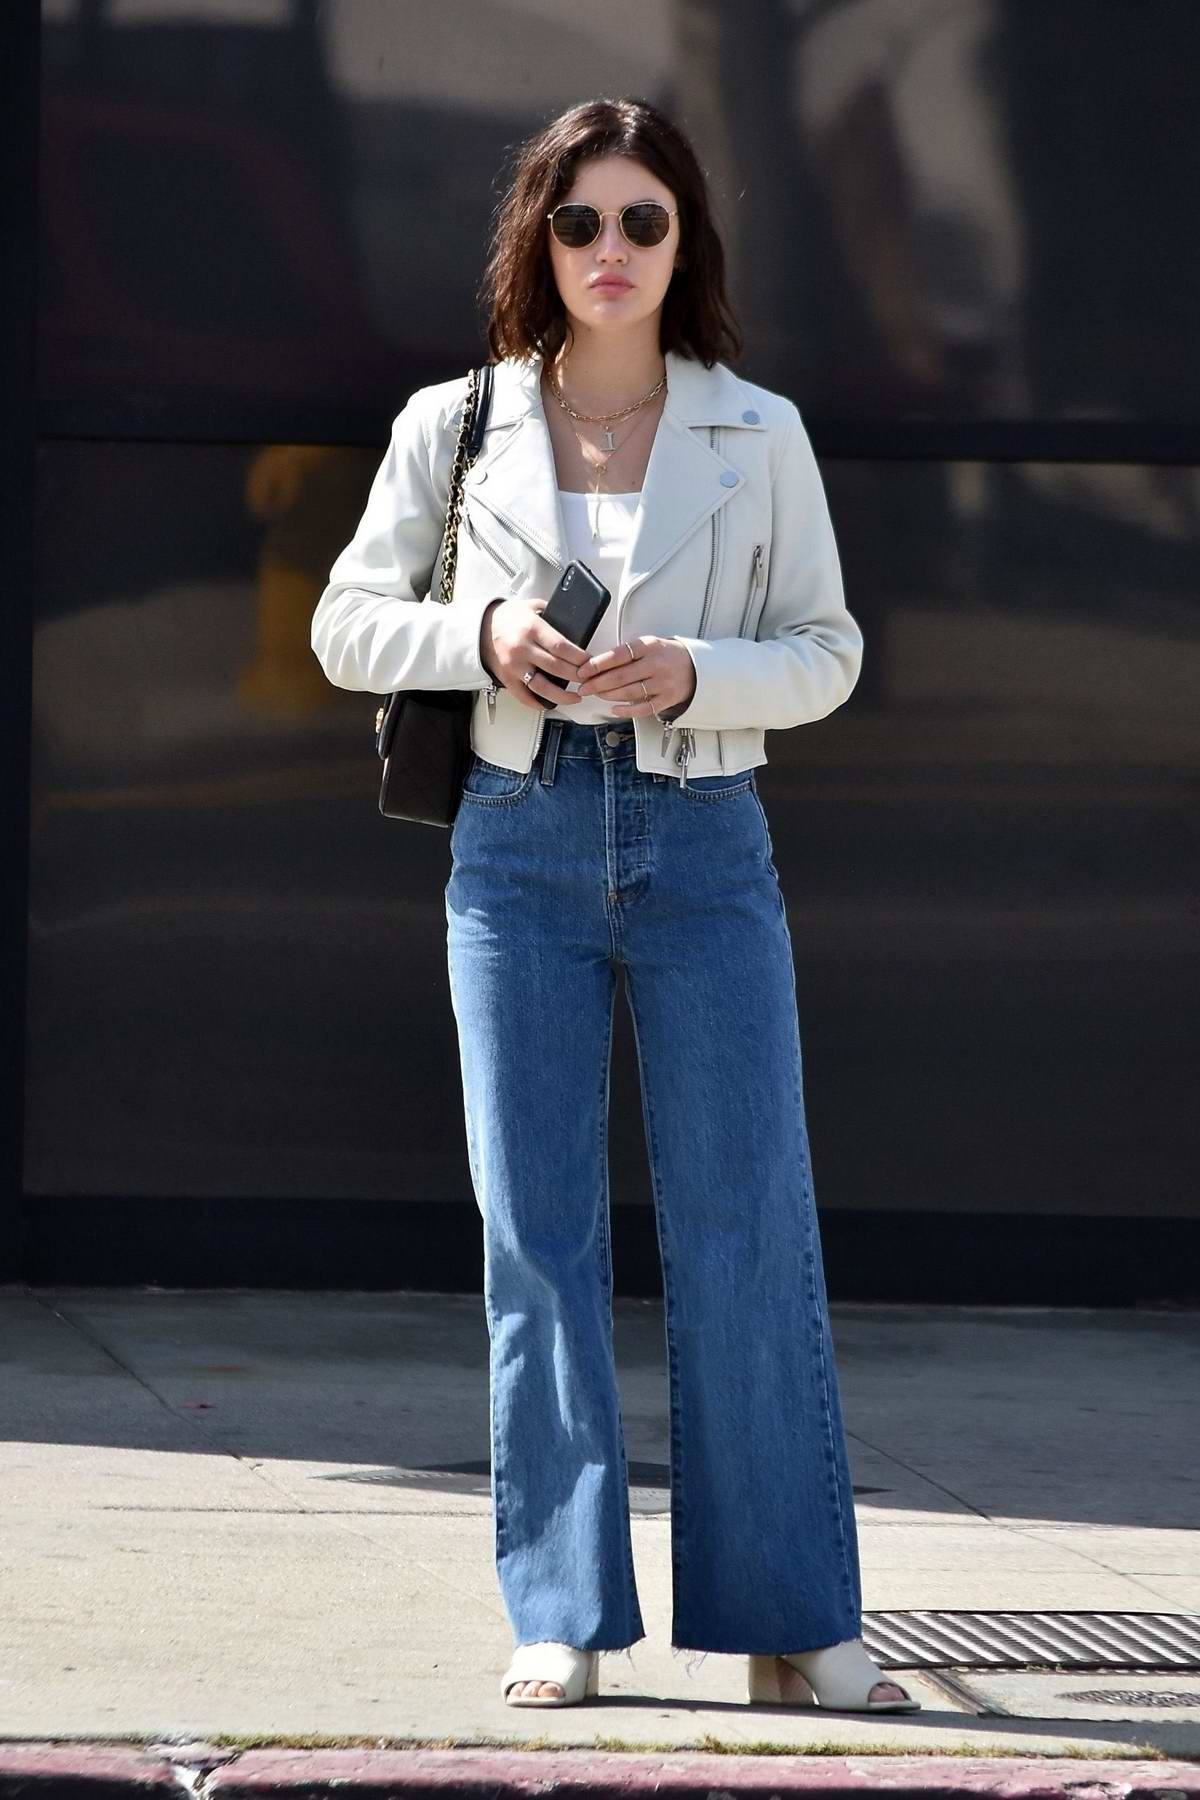 Lucy Hale looks great in a white leather jacket, white top and flared jeans while out on Easter Sunday in Los Angeles